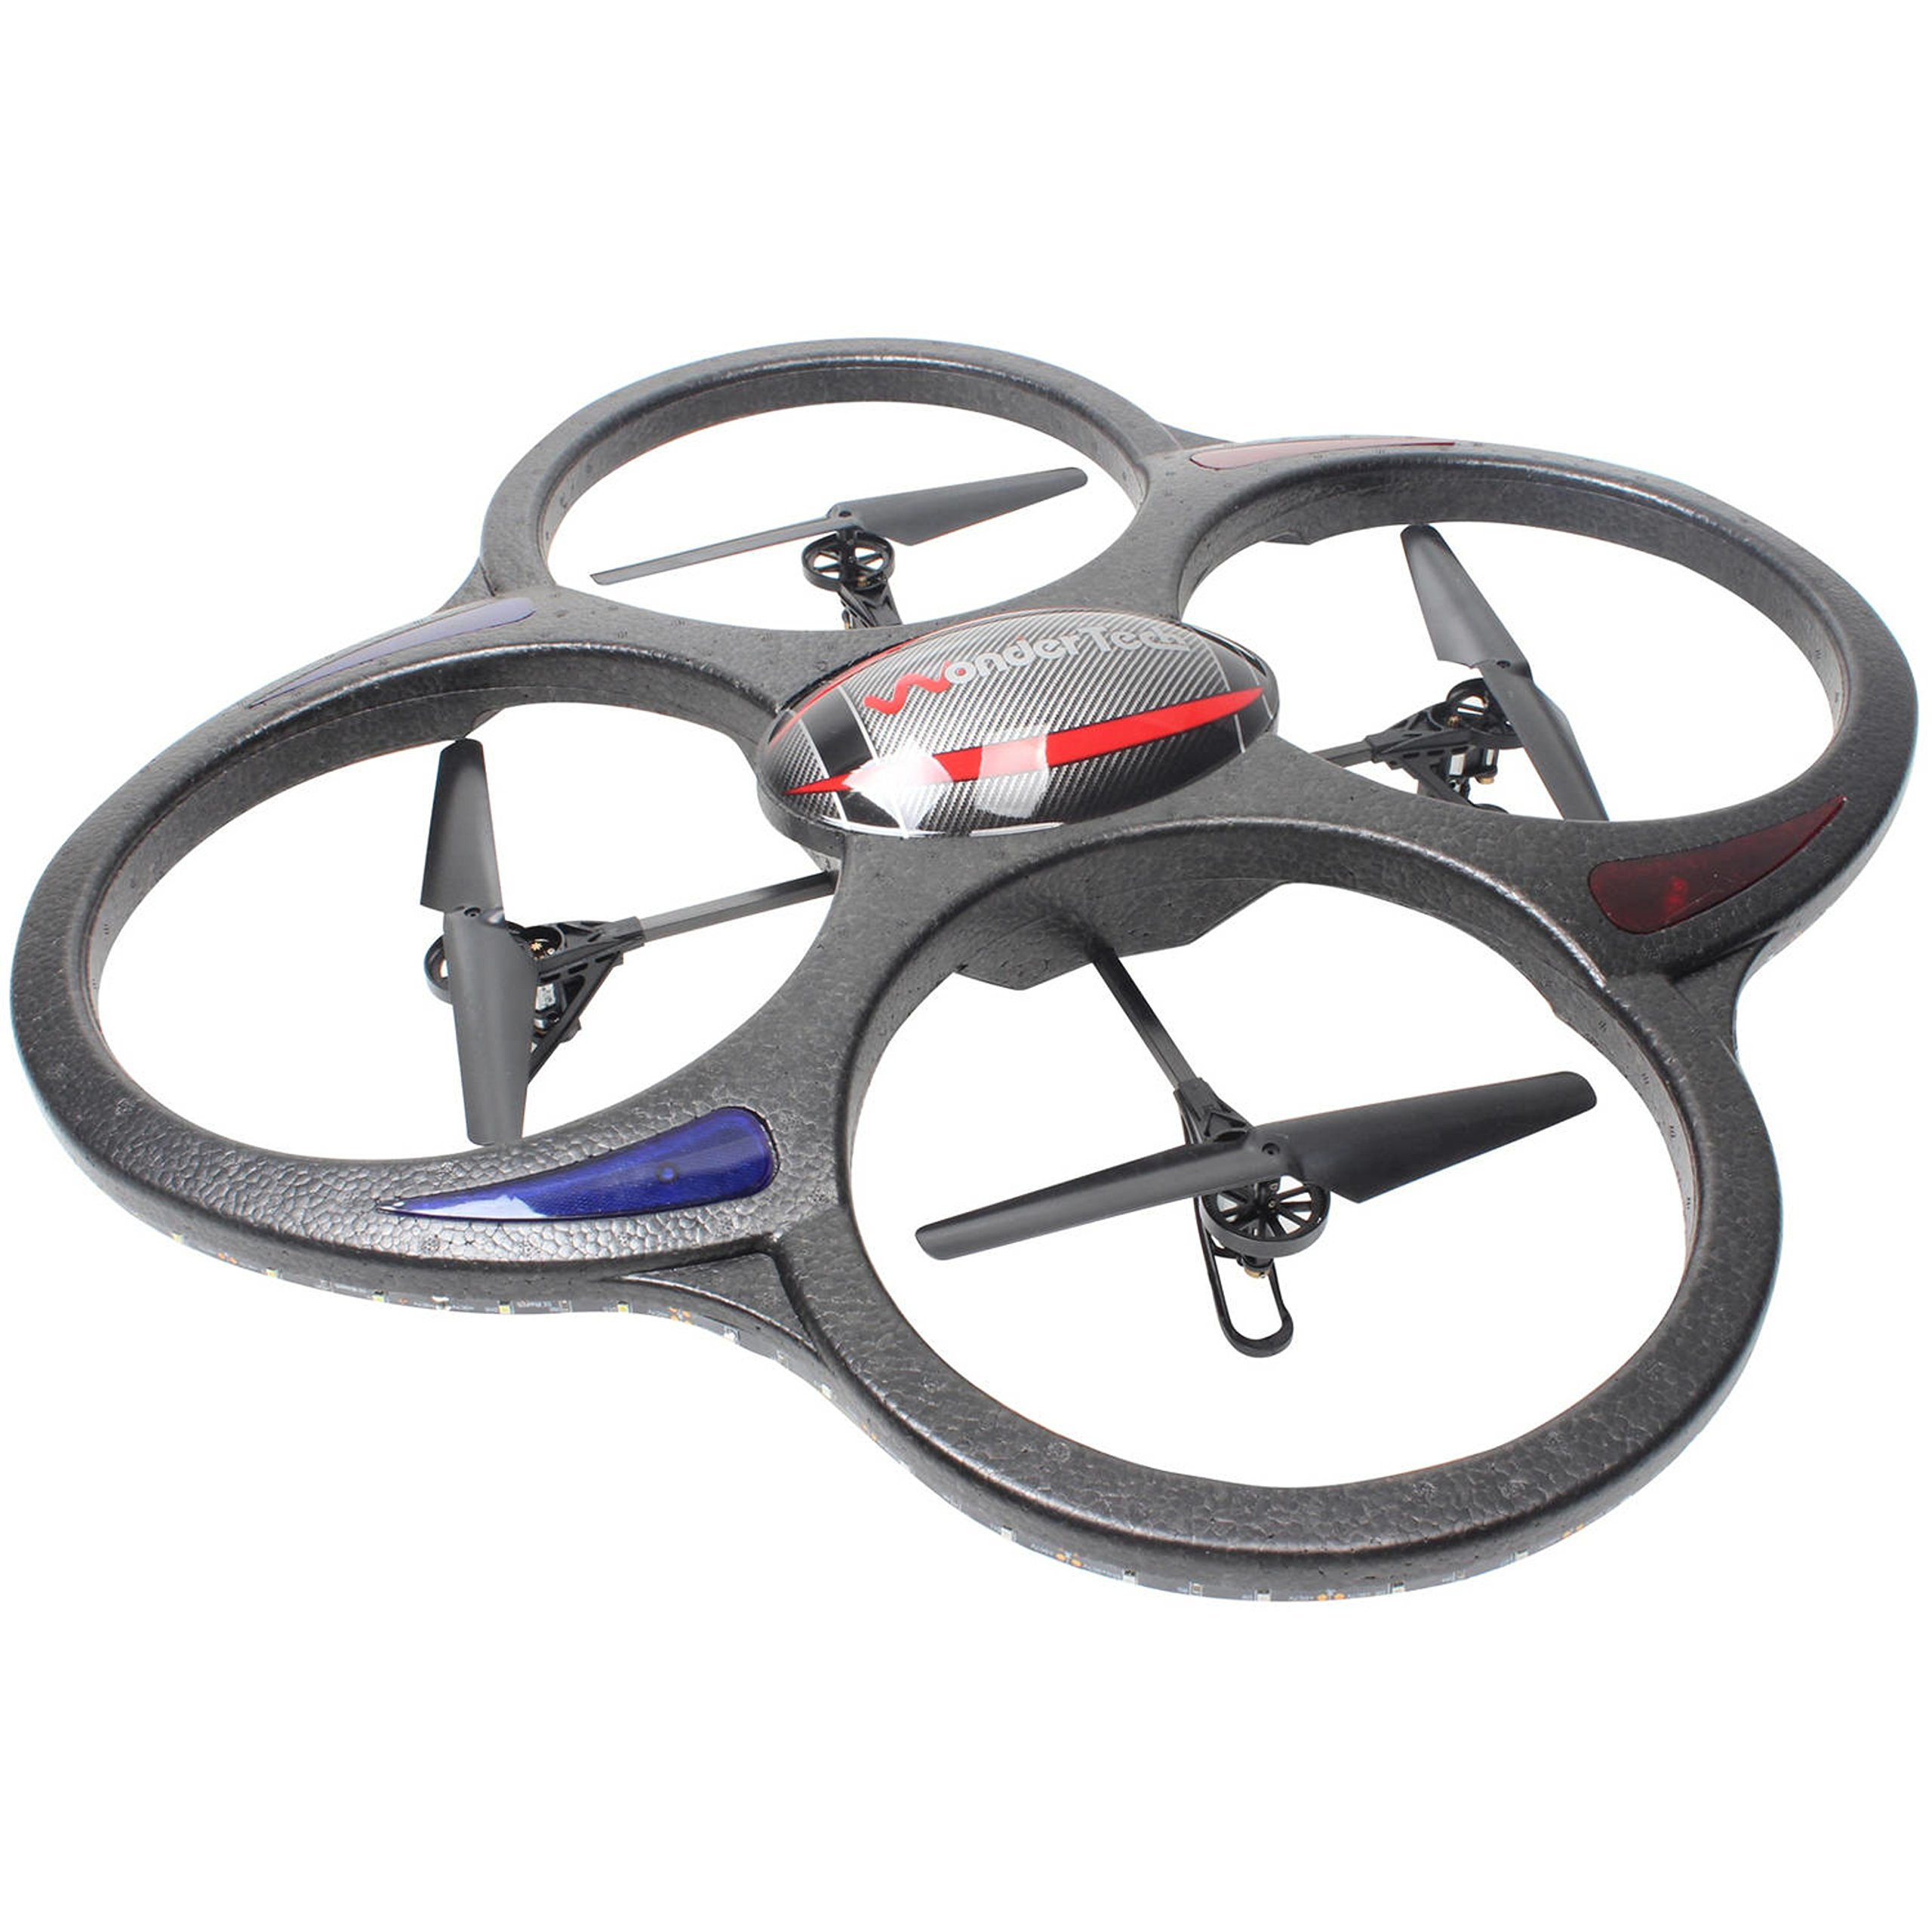 6-Axis Gyro Stabilization 2.4GHz Remote Control Black Quadcopter Flying Drone with LED Lights by WonderTech